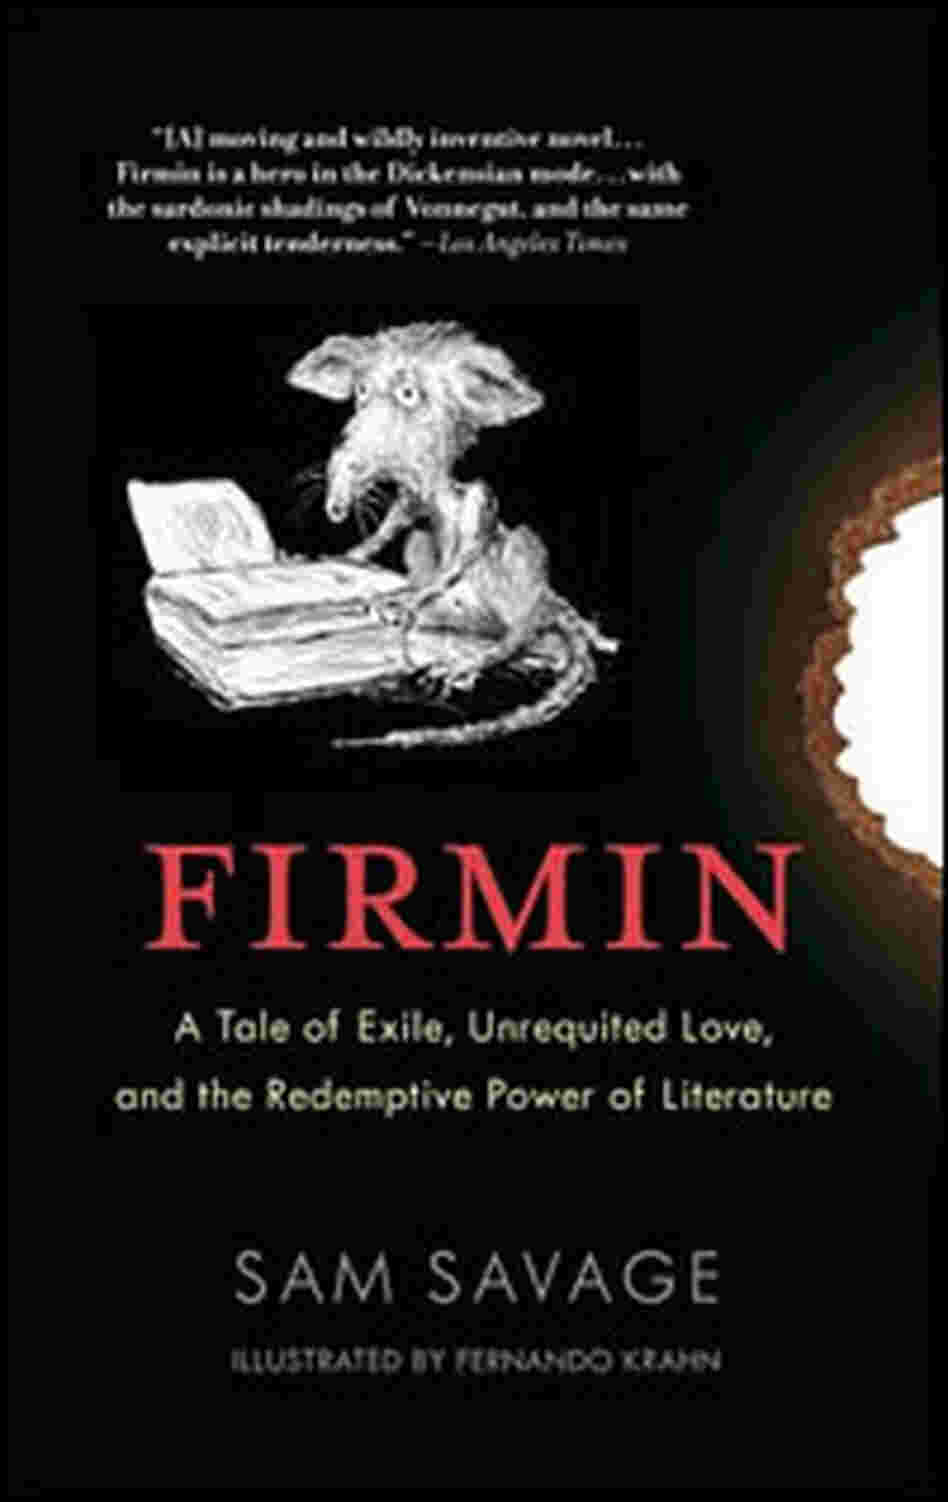 Sam Savage's 'Firmin'